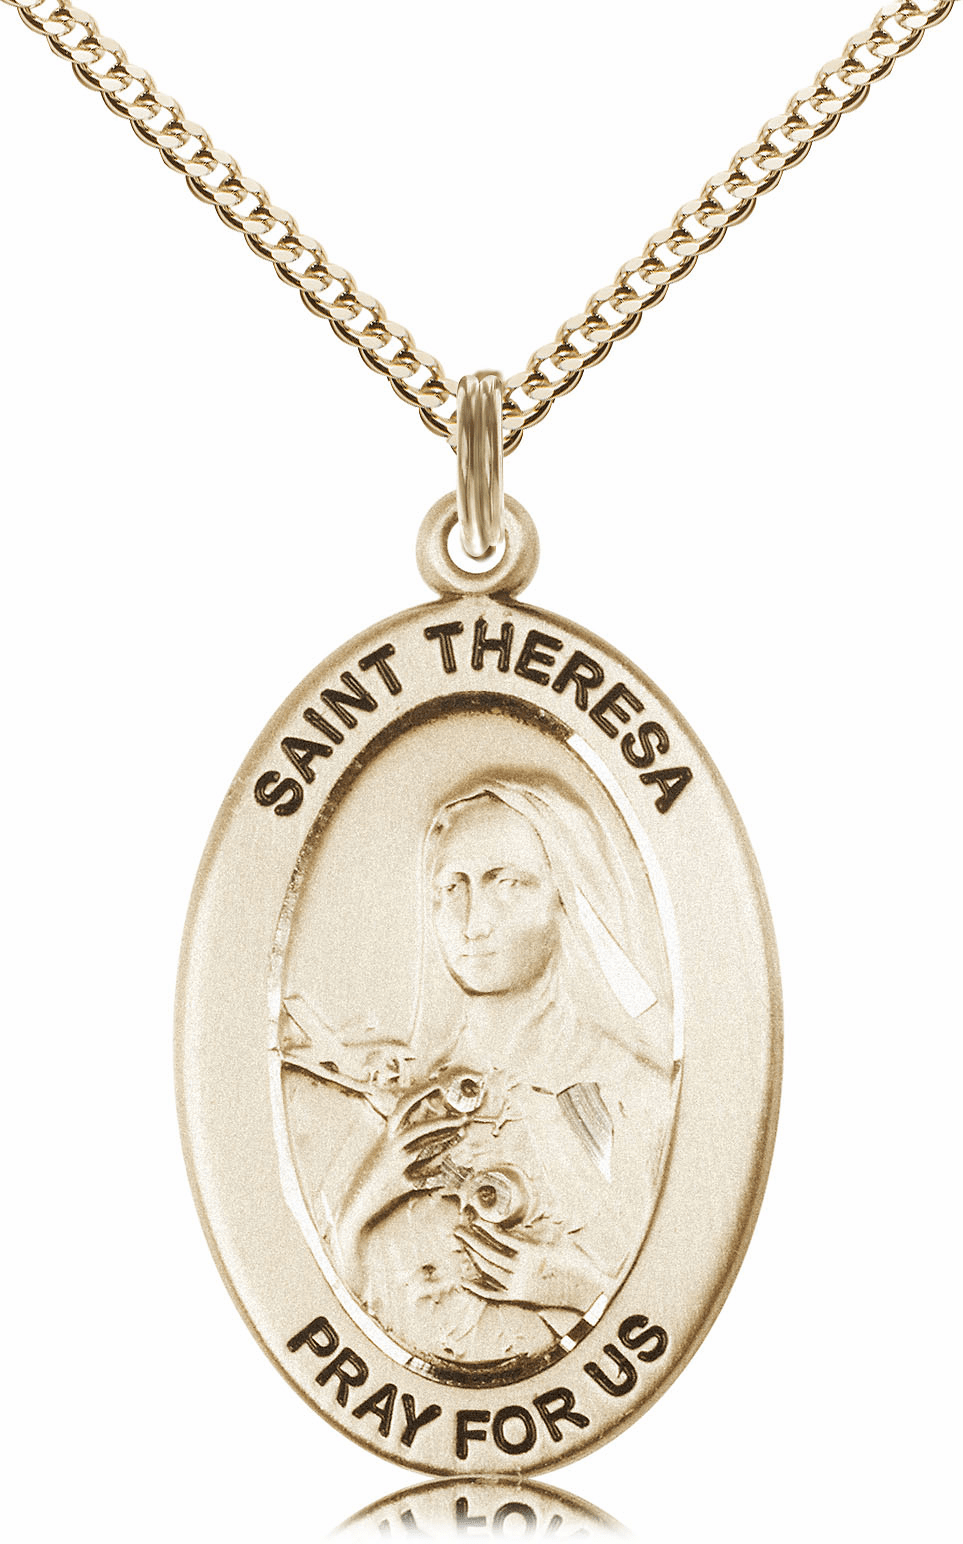 Bliss Mfg Saint Theresa 14kt Gold-filled Medal Necklace w/Chain